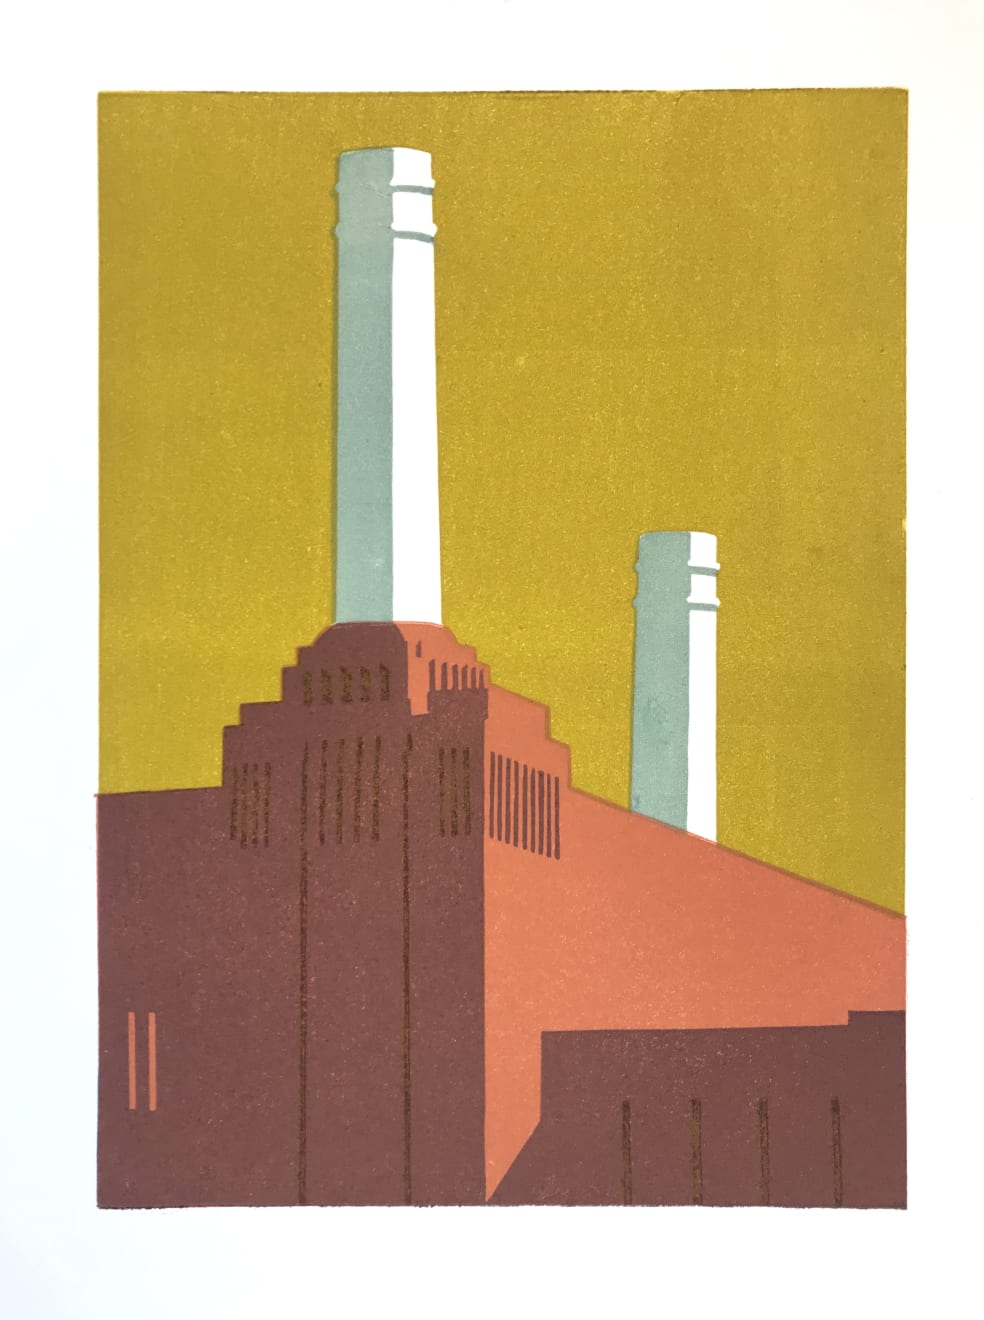 Summer Auction 2020, LOT 22 - Paul Catherall - 'Battersea Mustard', 2019